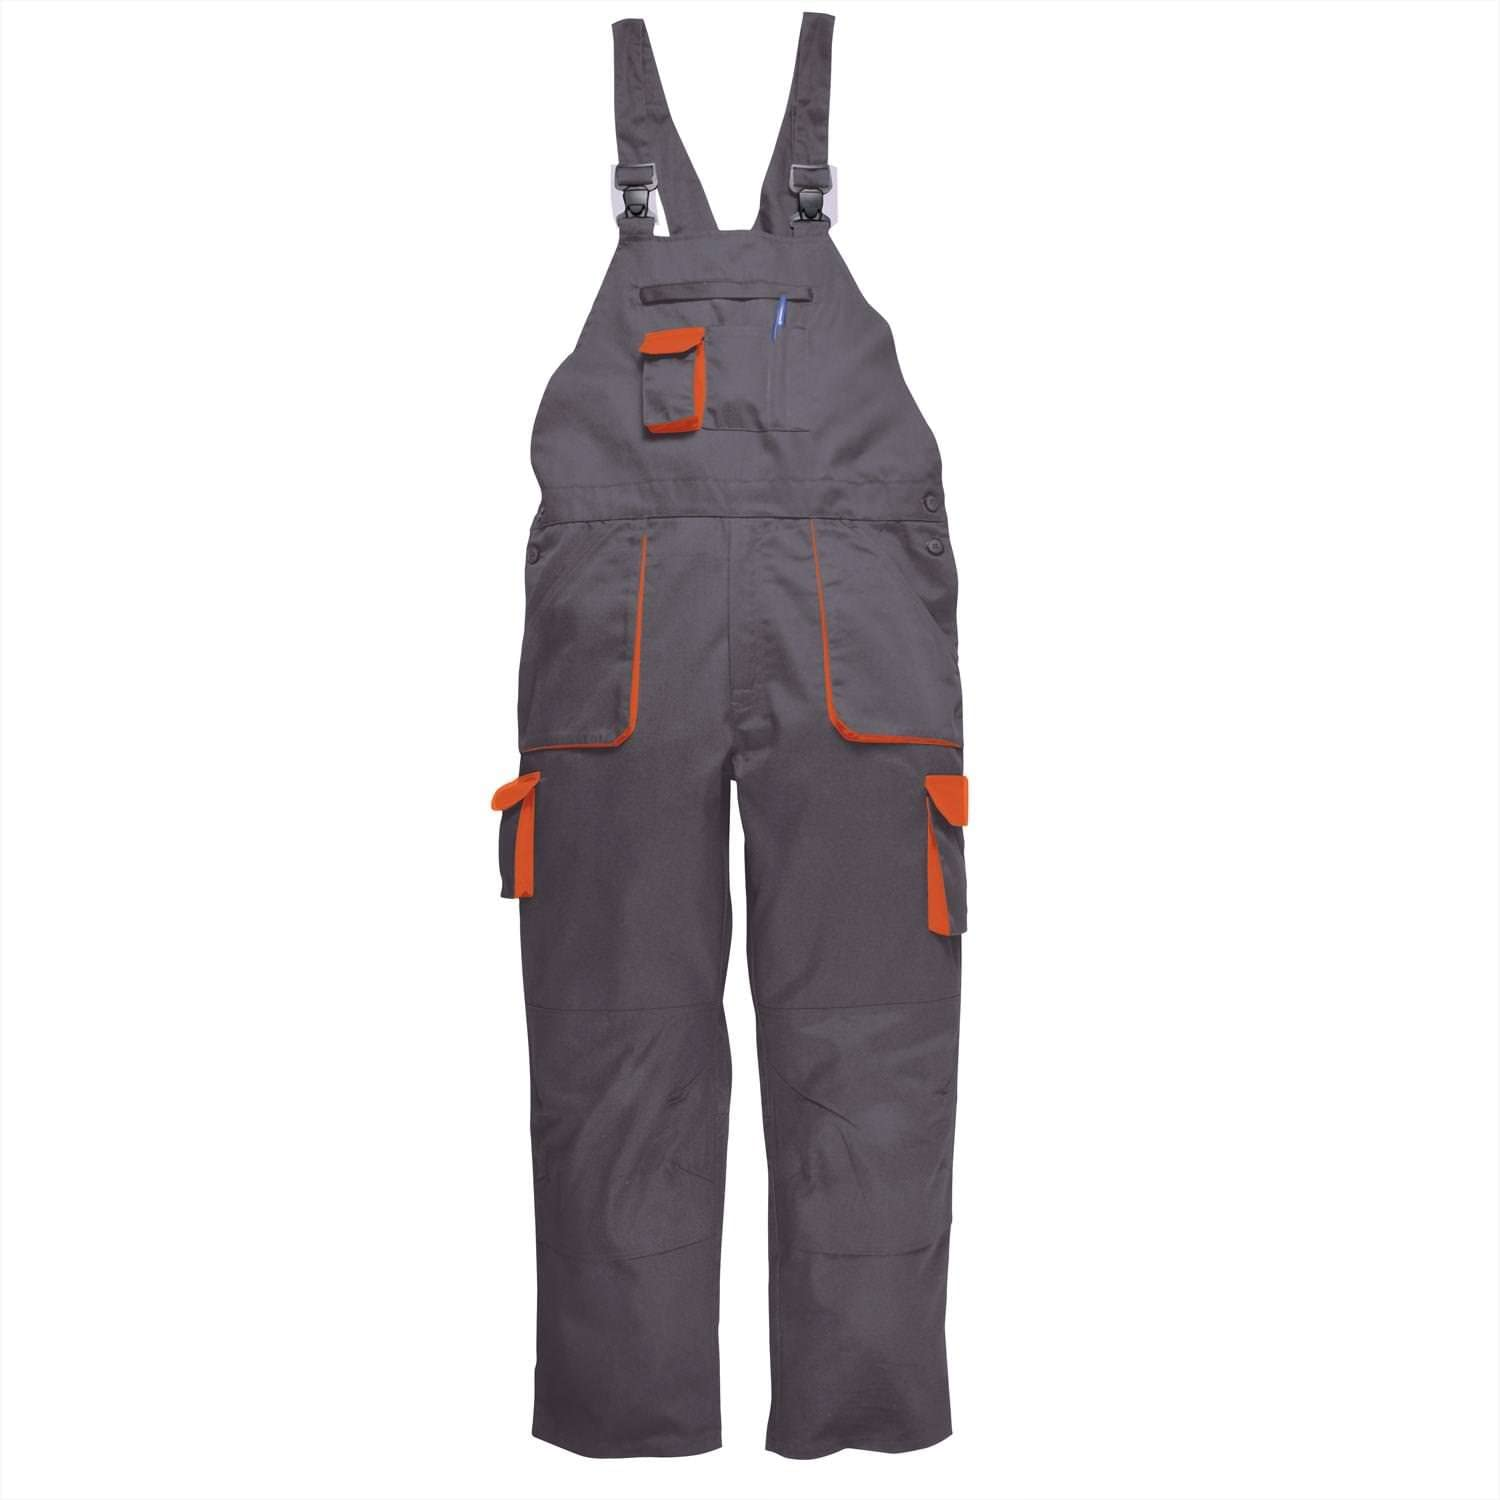 Portwest Texo Contrast Bib and Brace Men Workwear Painters Coverall Overall TX12